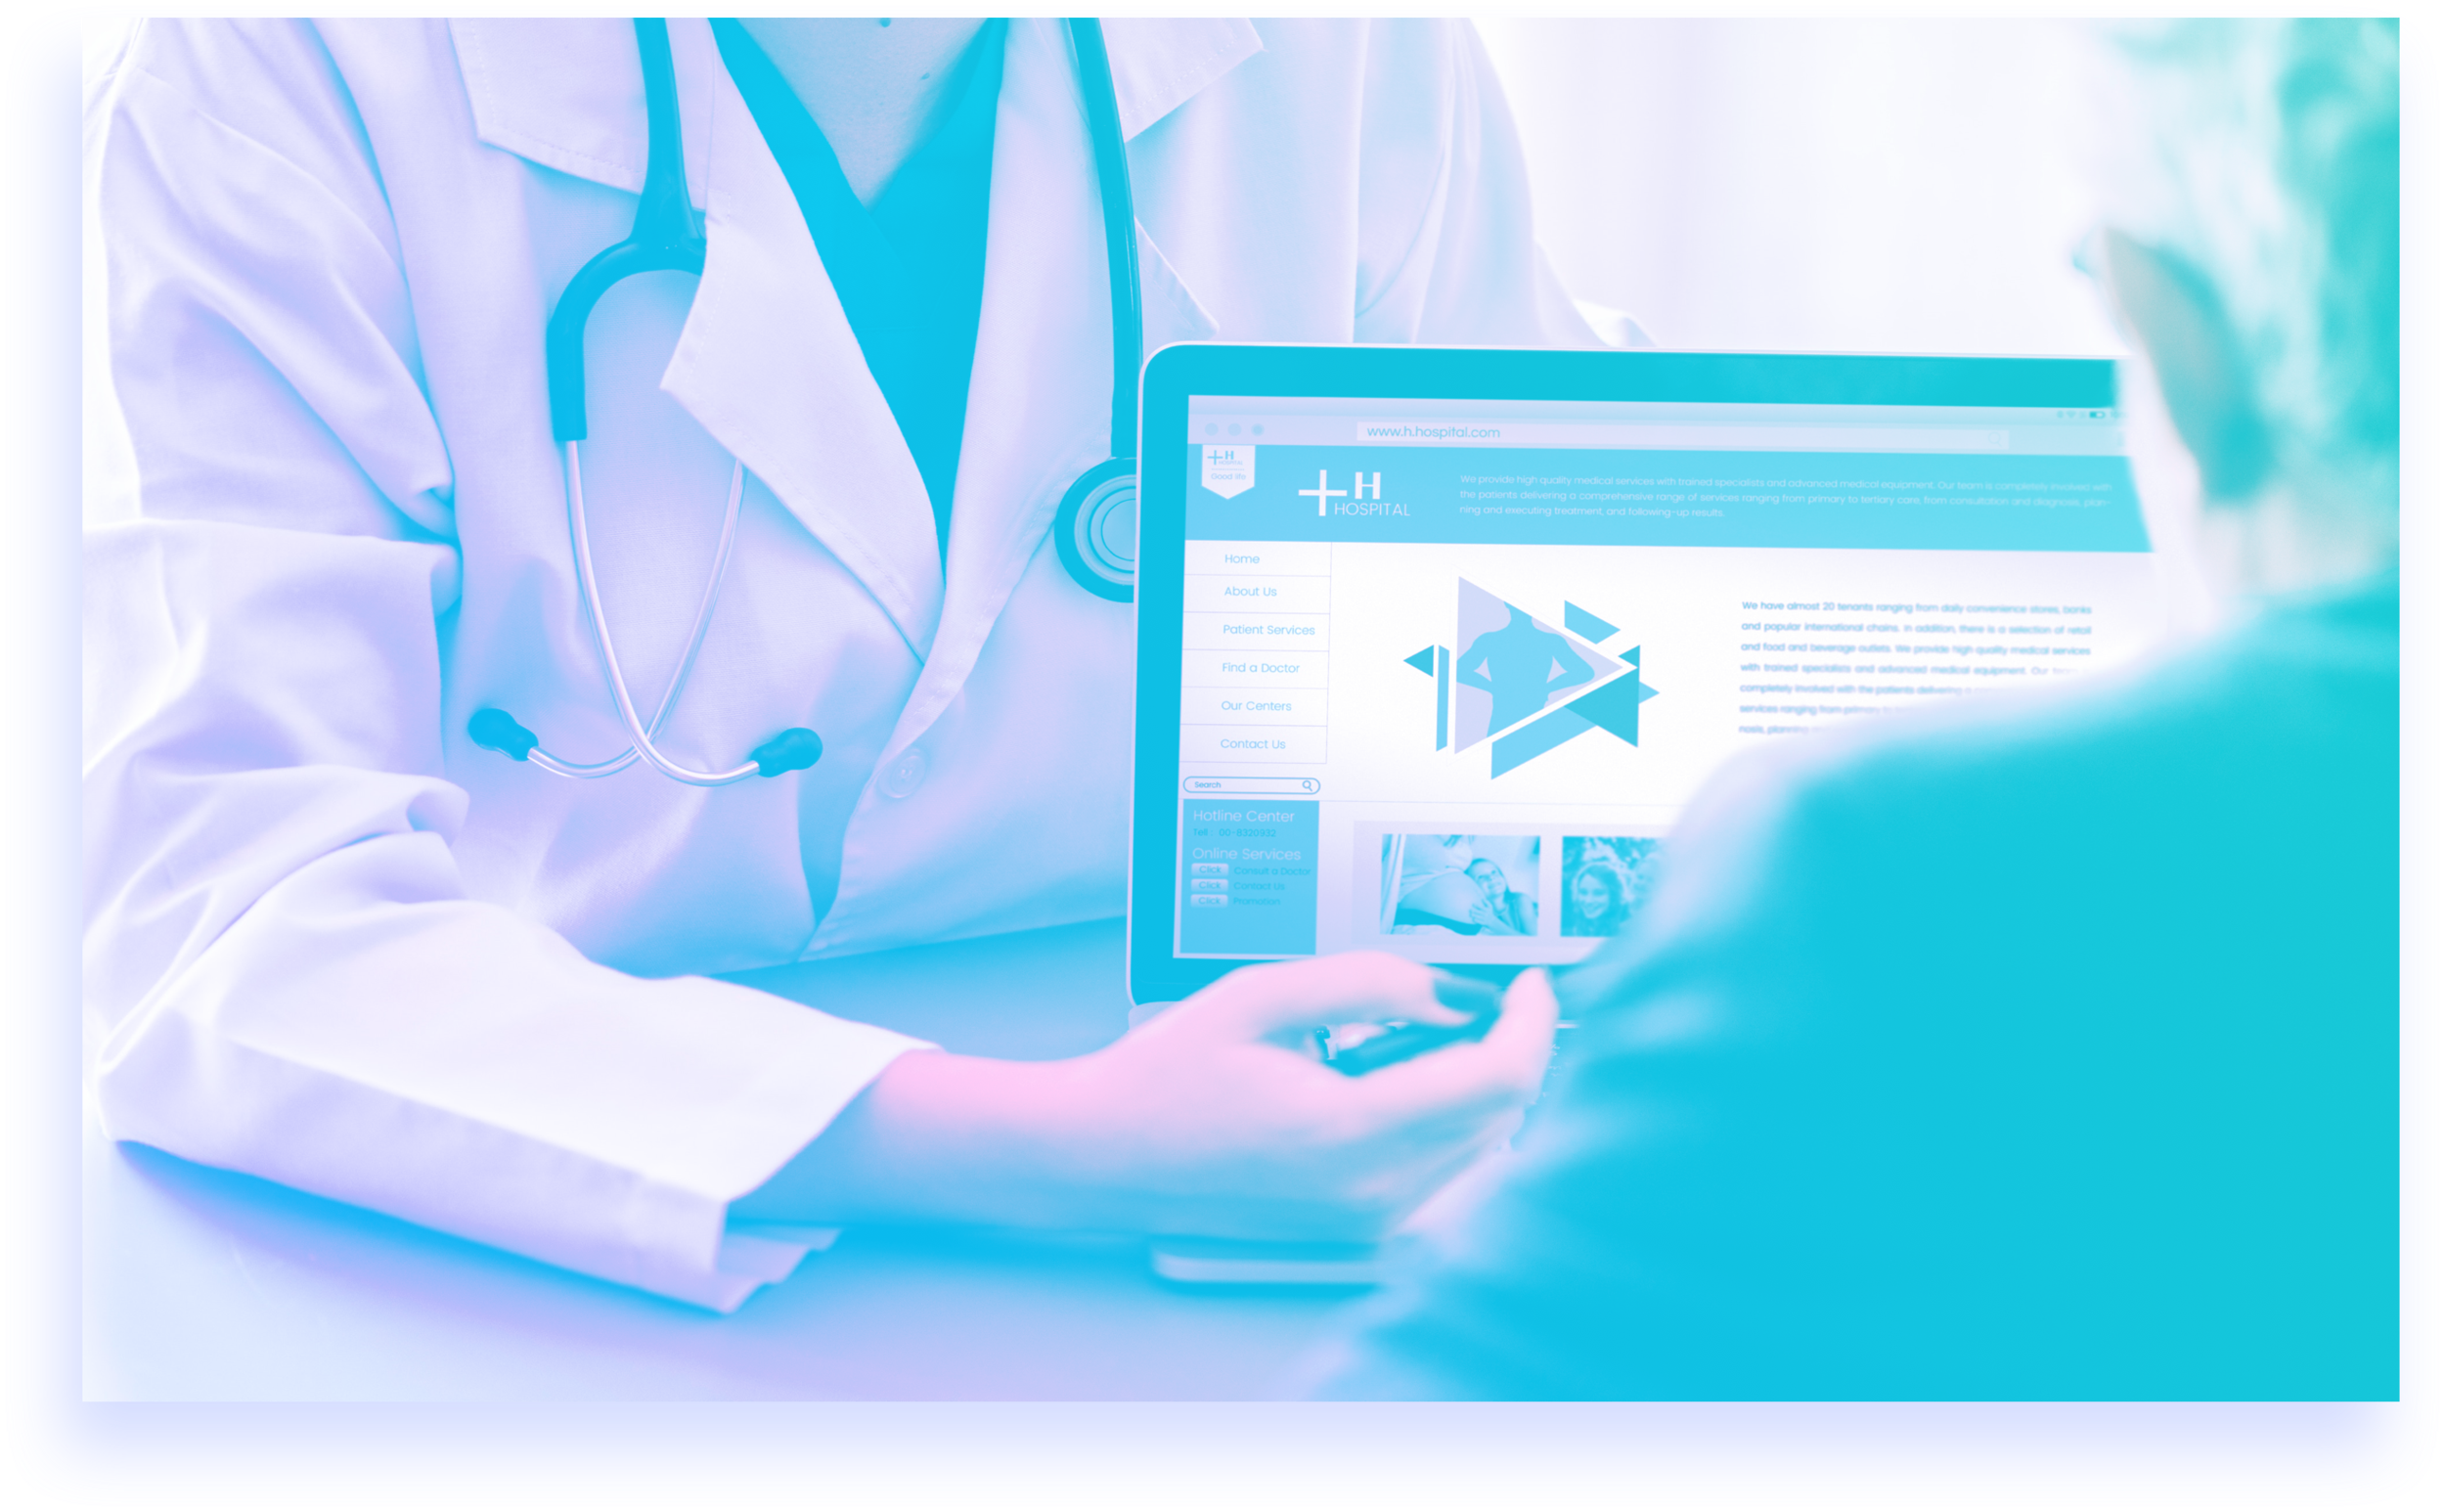 Data control and incident response - A large healthcare organization was struggling to integrate people, policies and procedures into a process that could deliver comprehensive results. They needed a solution to manage risk assessments, meet compliance requirements, automate their current process, and help them effectively scale large amounts of data.